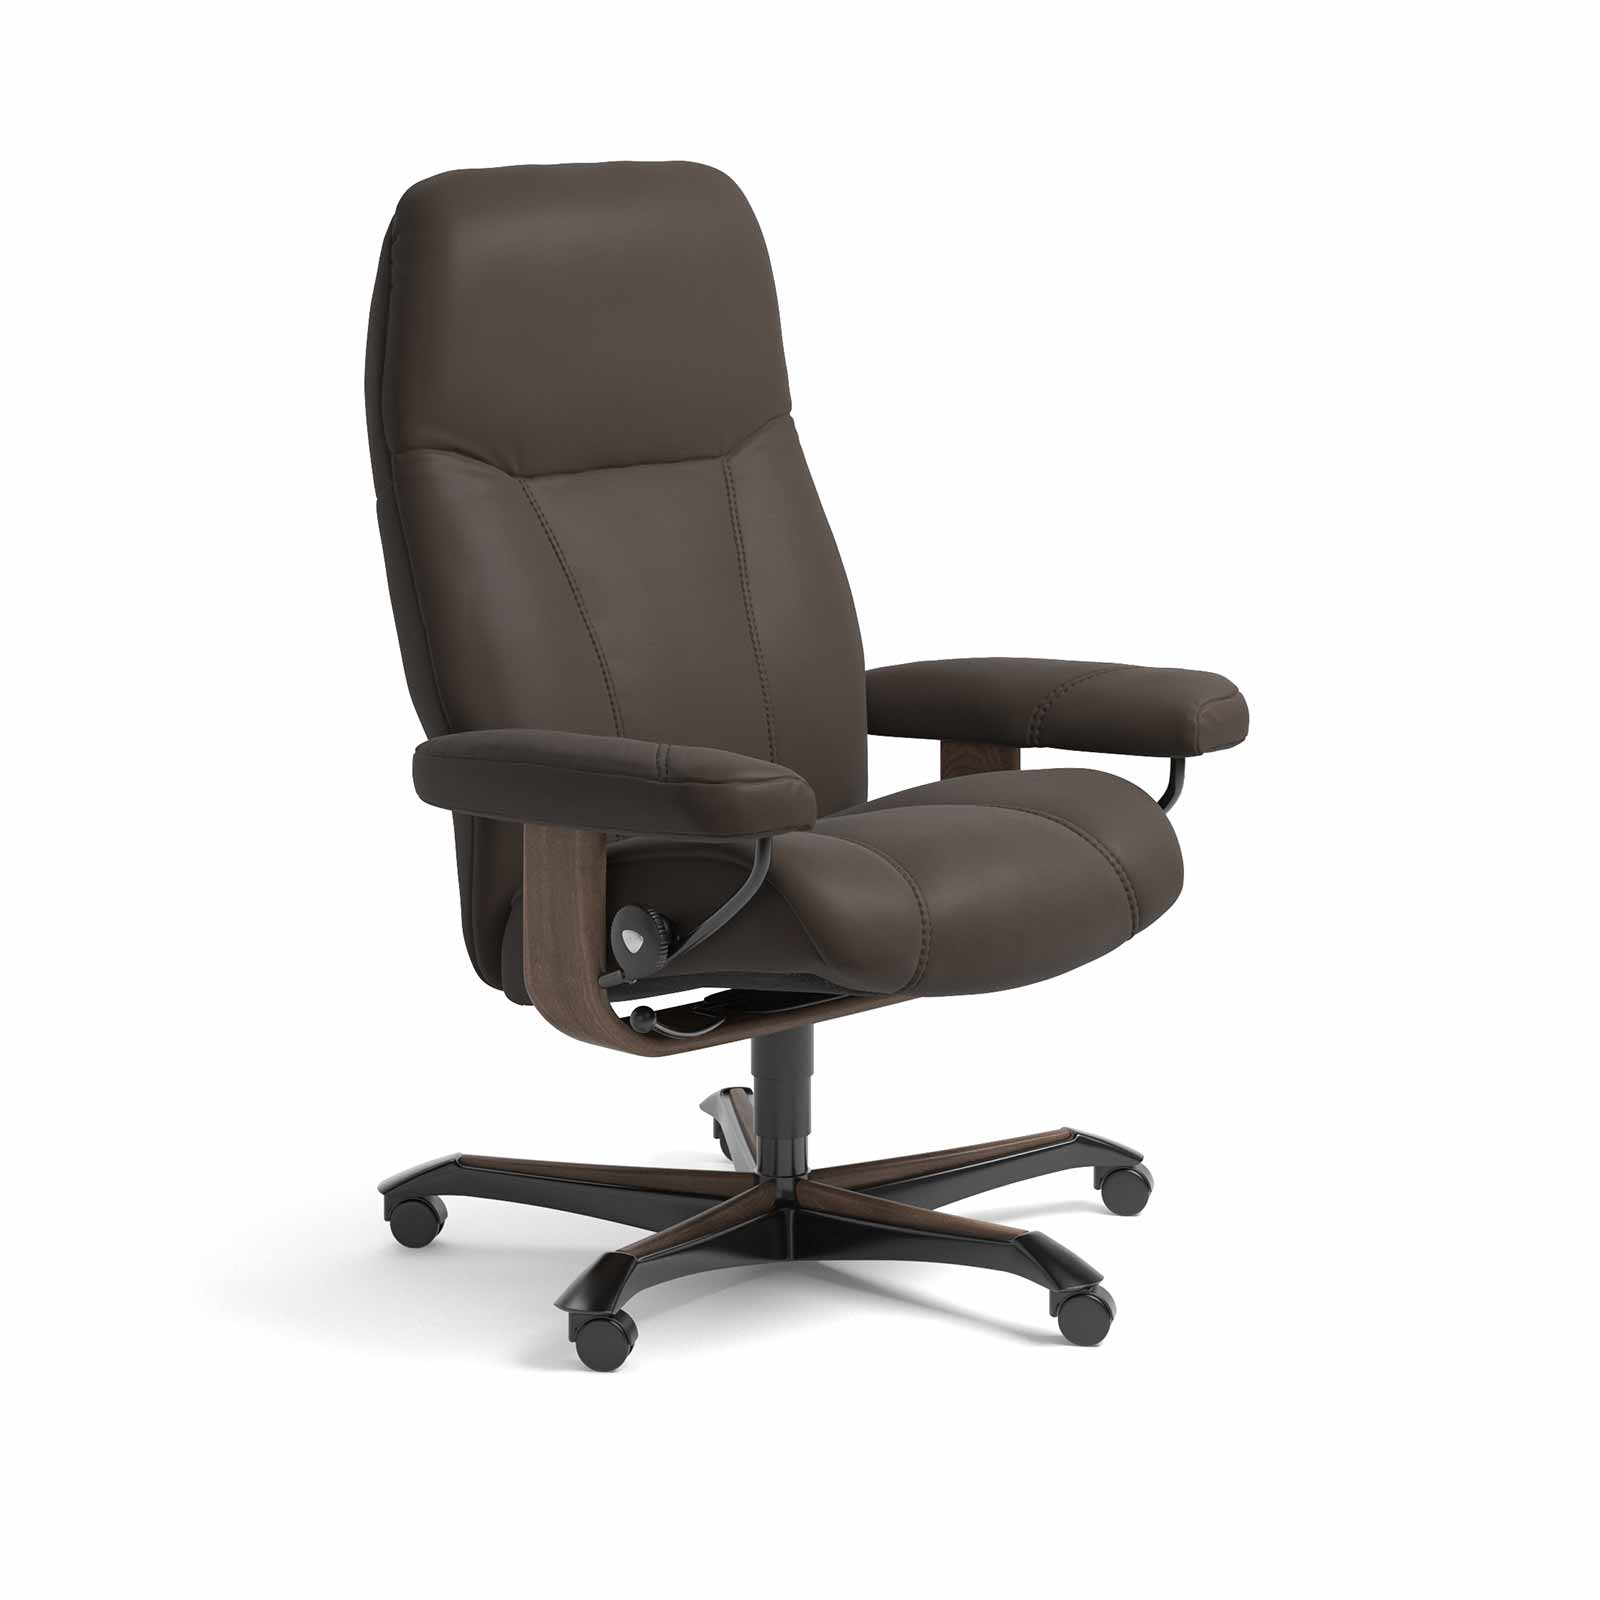 Stressless Home Office Preisliste Stressless Sessel Consul Home Office Batick Braun | Stressless